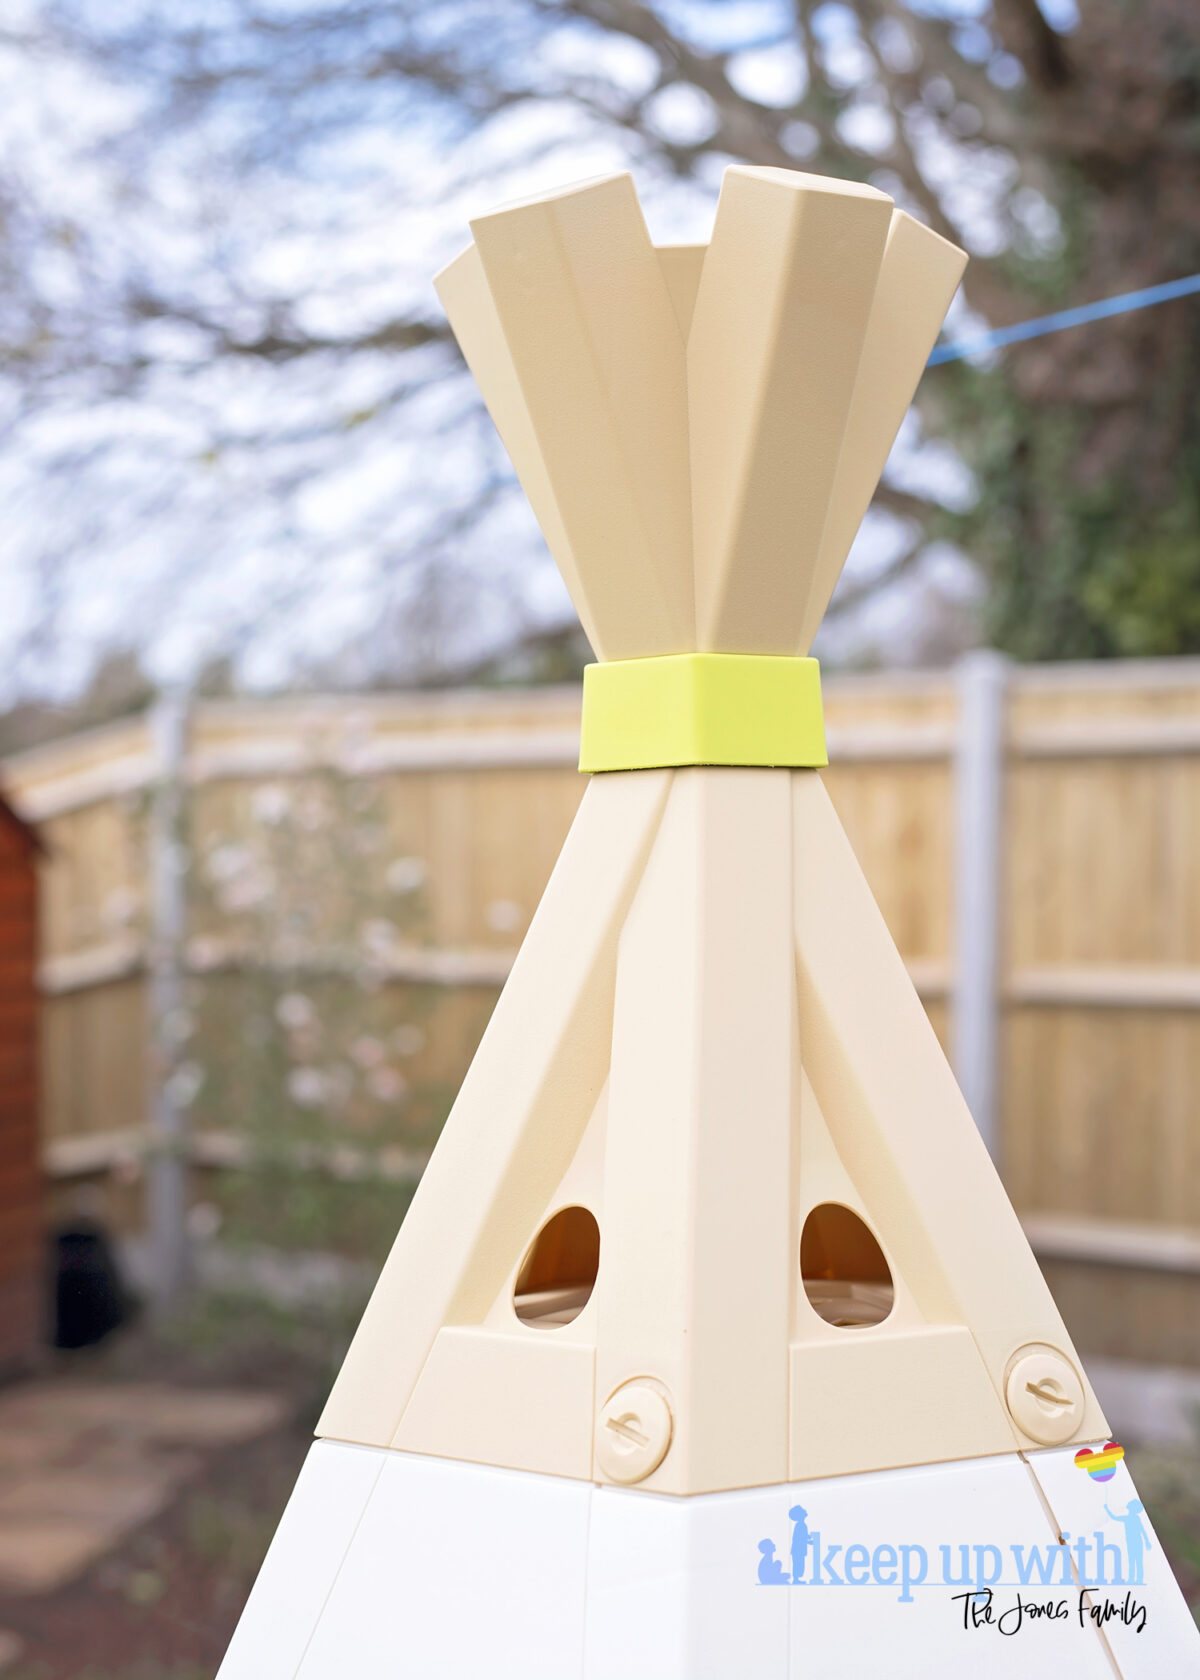 Image shows the new Smoby Teepee, available on Amazon, in the garden. The teepee is cream, white and green and the image shows the plastic teepee recreating the top part of a teepee where the wooden poles are crossed.